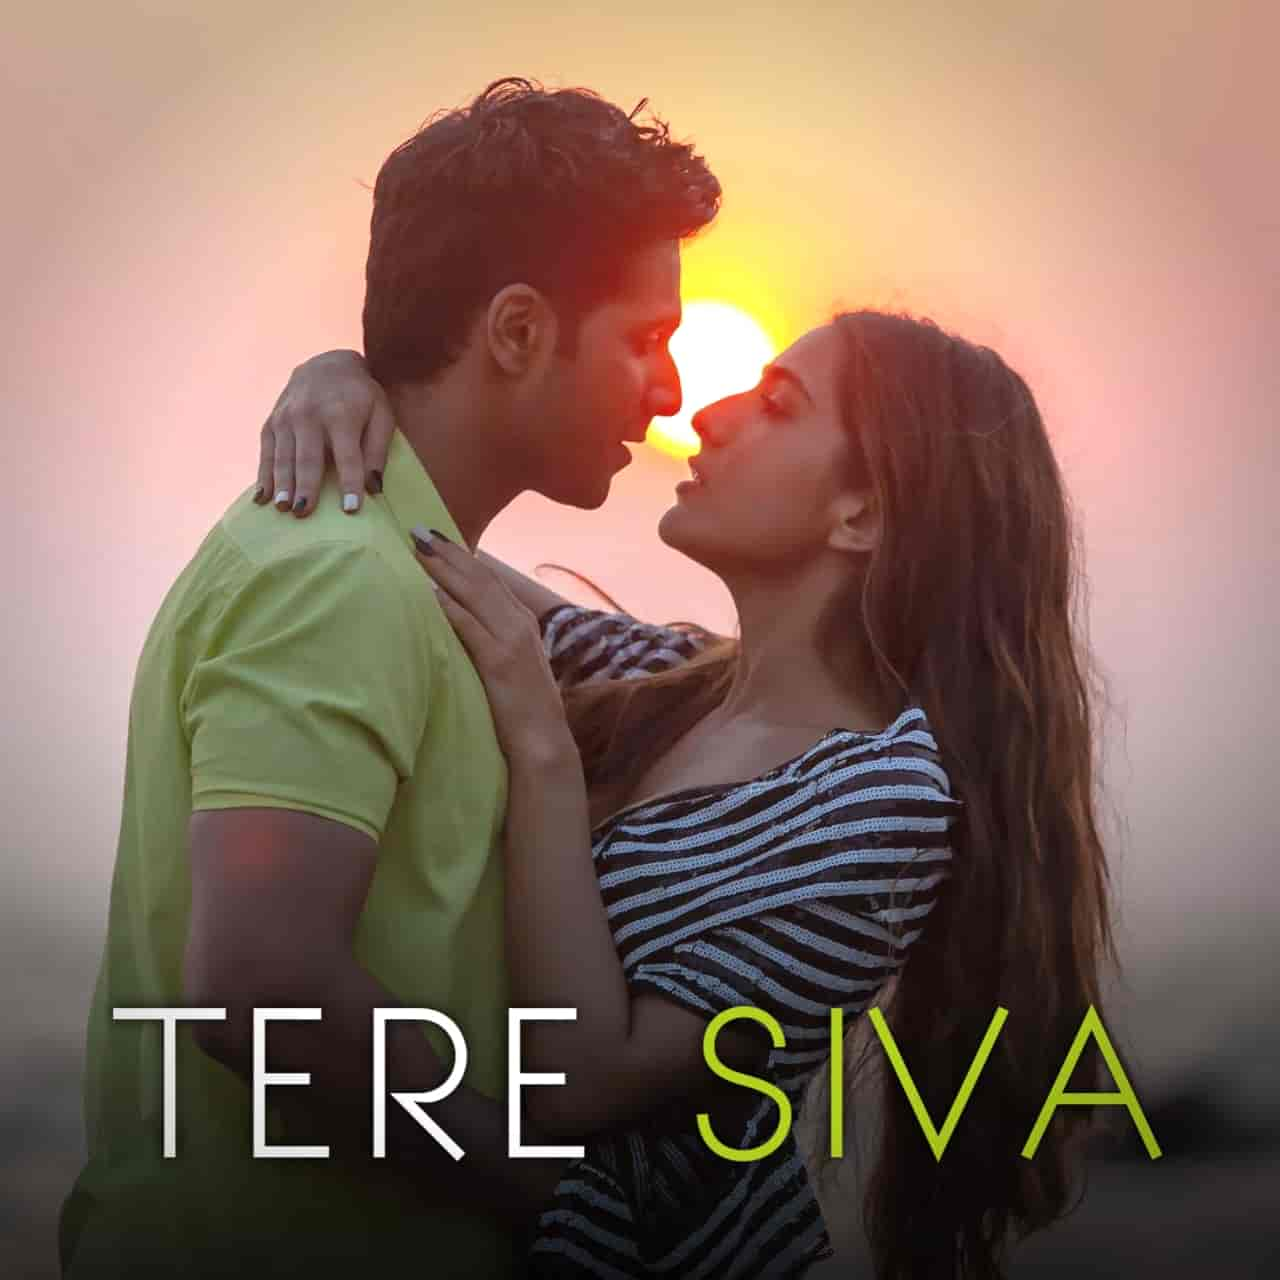 Tere Siva Hindi Song Image Features Varun Dhawan and Sara Ali Khan From Movie Coolie No.1